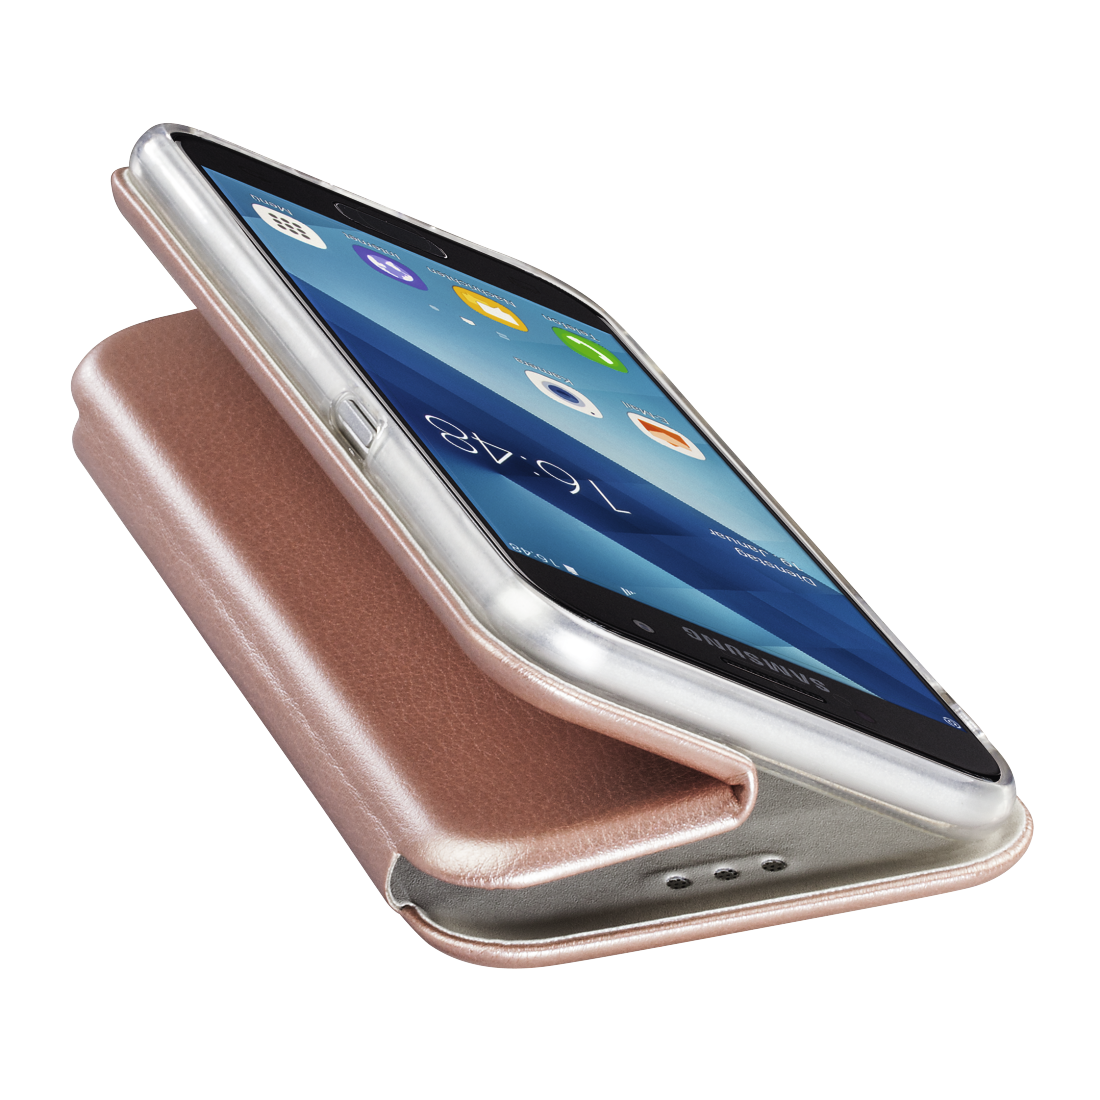 abx3 High-Res Image 3 - Hama, Curve Booklet for Samsung Galaxy A5 (